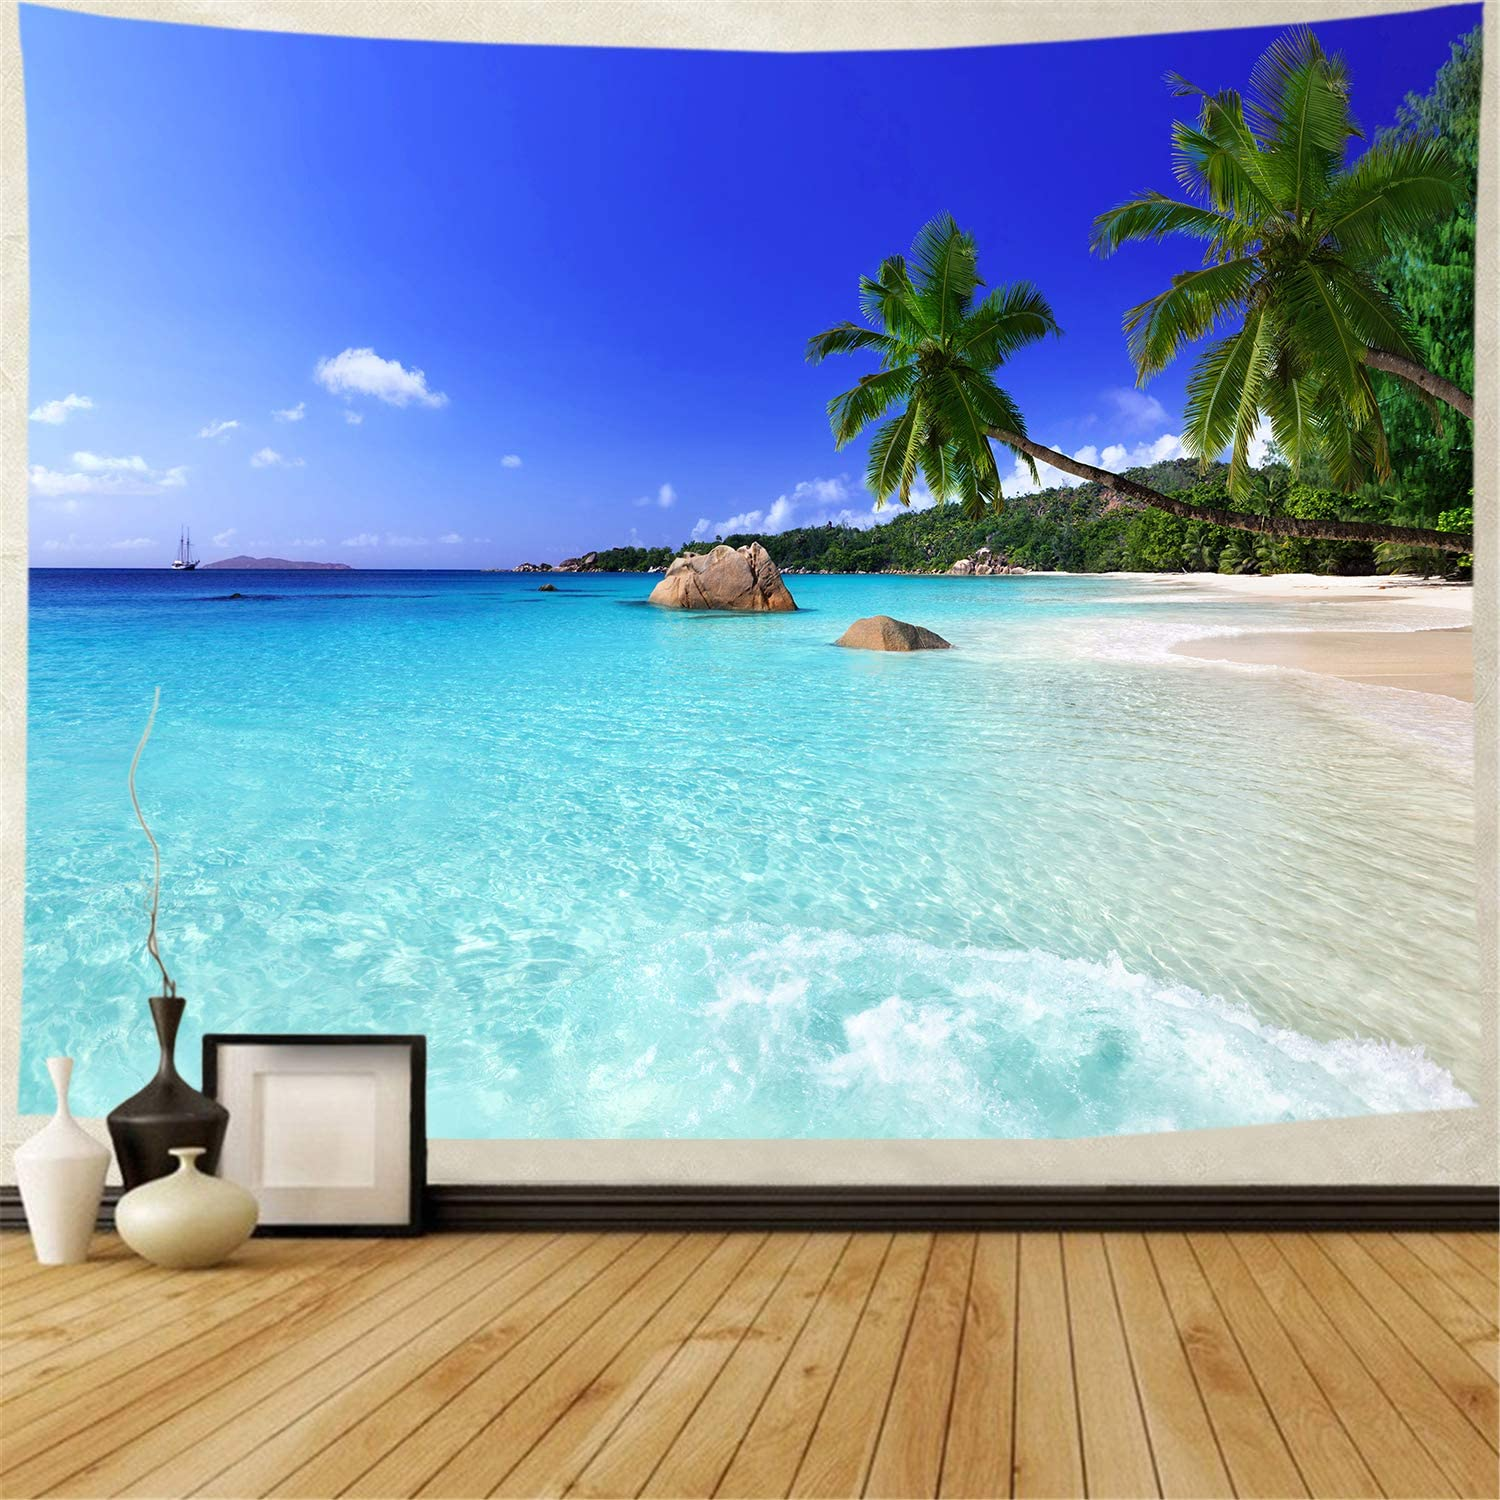 Tapestry Ocean Beach Tapestry Wall Hanging Tropic Paradise Beach Wall Tapestry Coconut Tree Tapestry Hippie Bohemian Tapestry Palm Tree Tapestry For Home Decor Everything Else